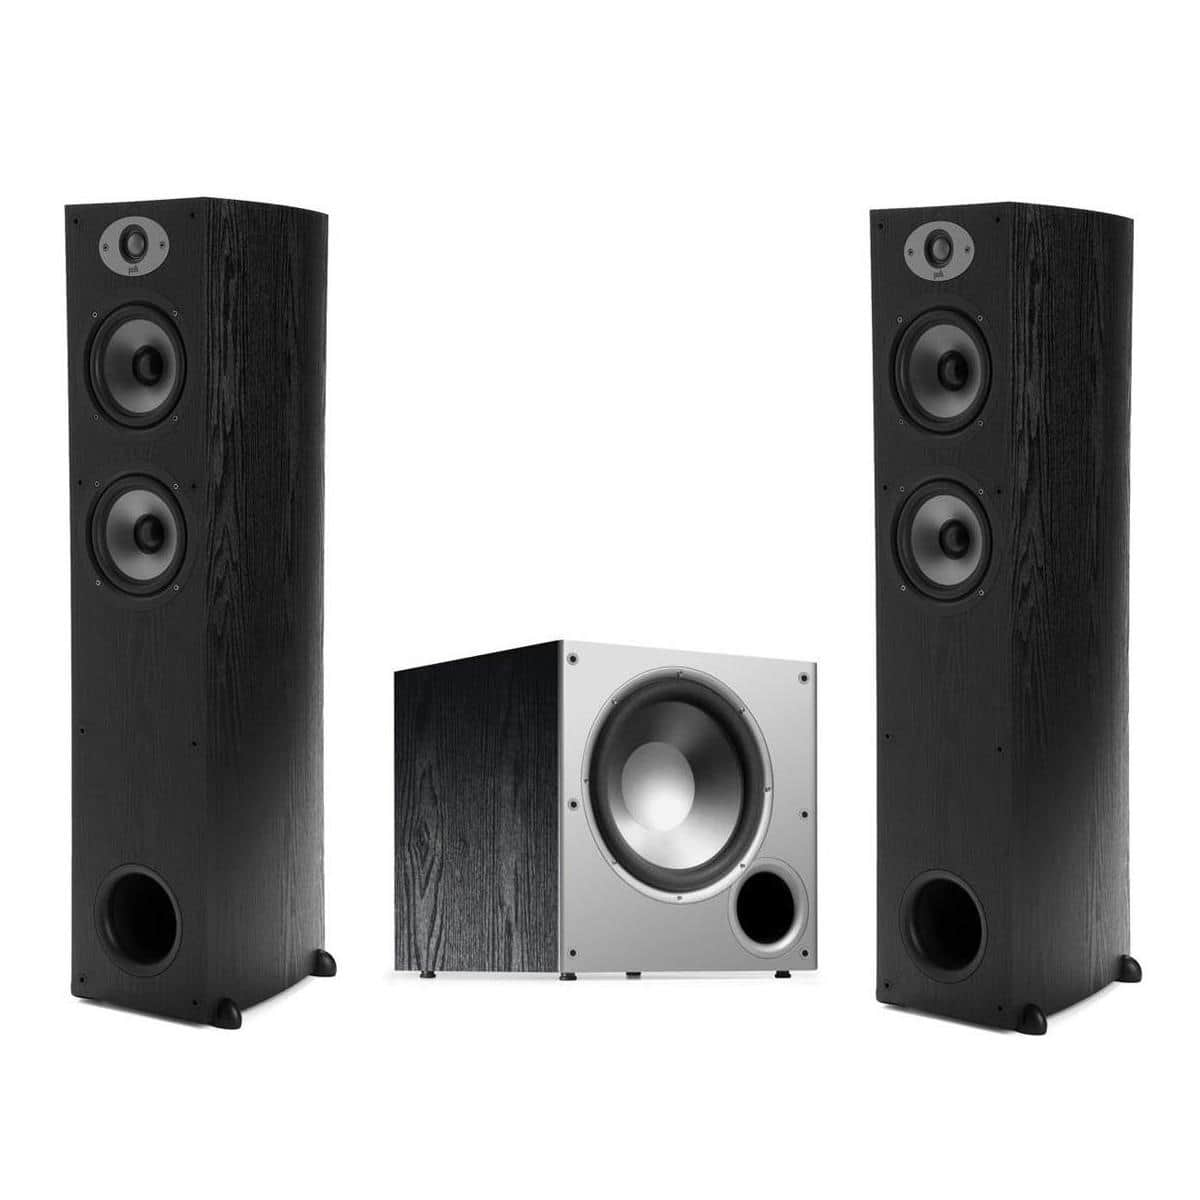 "Polk Audio TSx 330T 2-Way Floorstanding Tower Speakers (pair) + Polk Audio PSW10 10"" Powered Subwoofer $320 + free shipping"